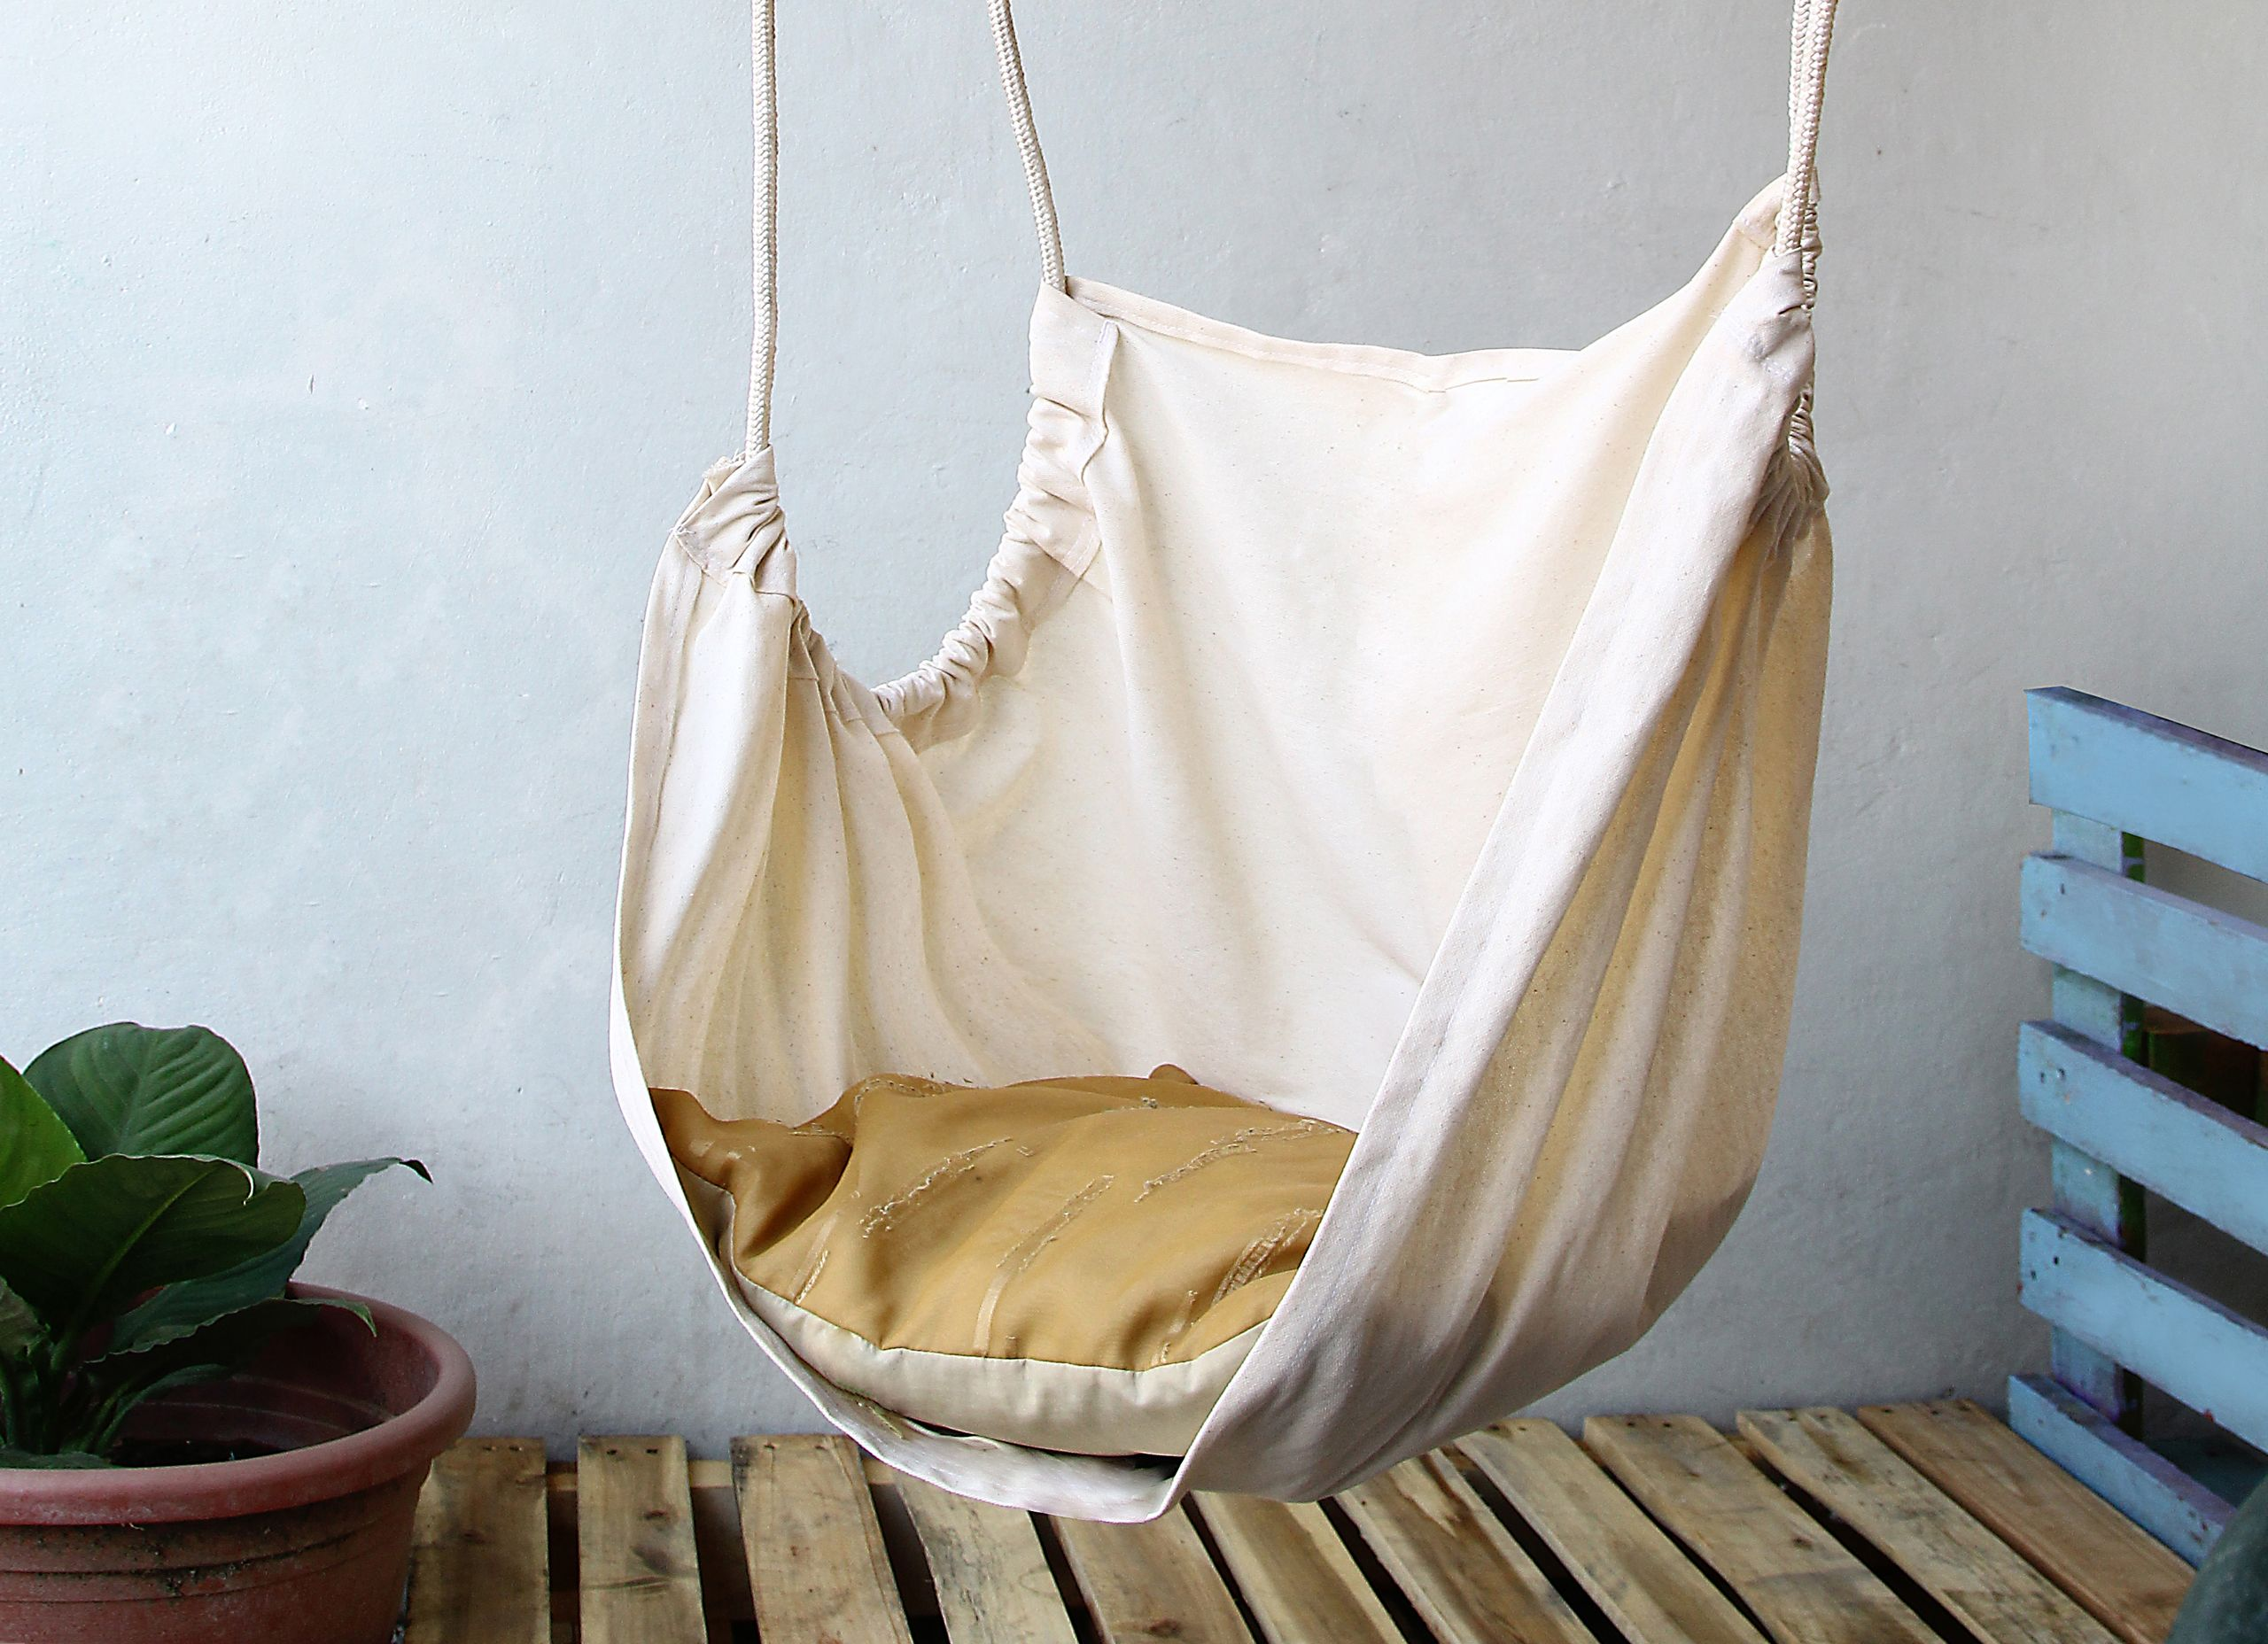 Make a Hammock Chair | Diy hammock, Hammock chair and Diy ...